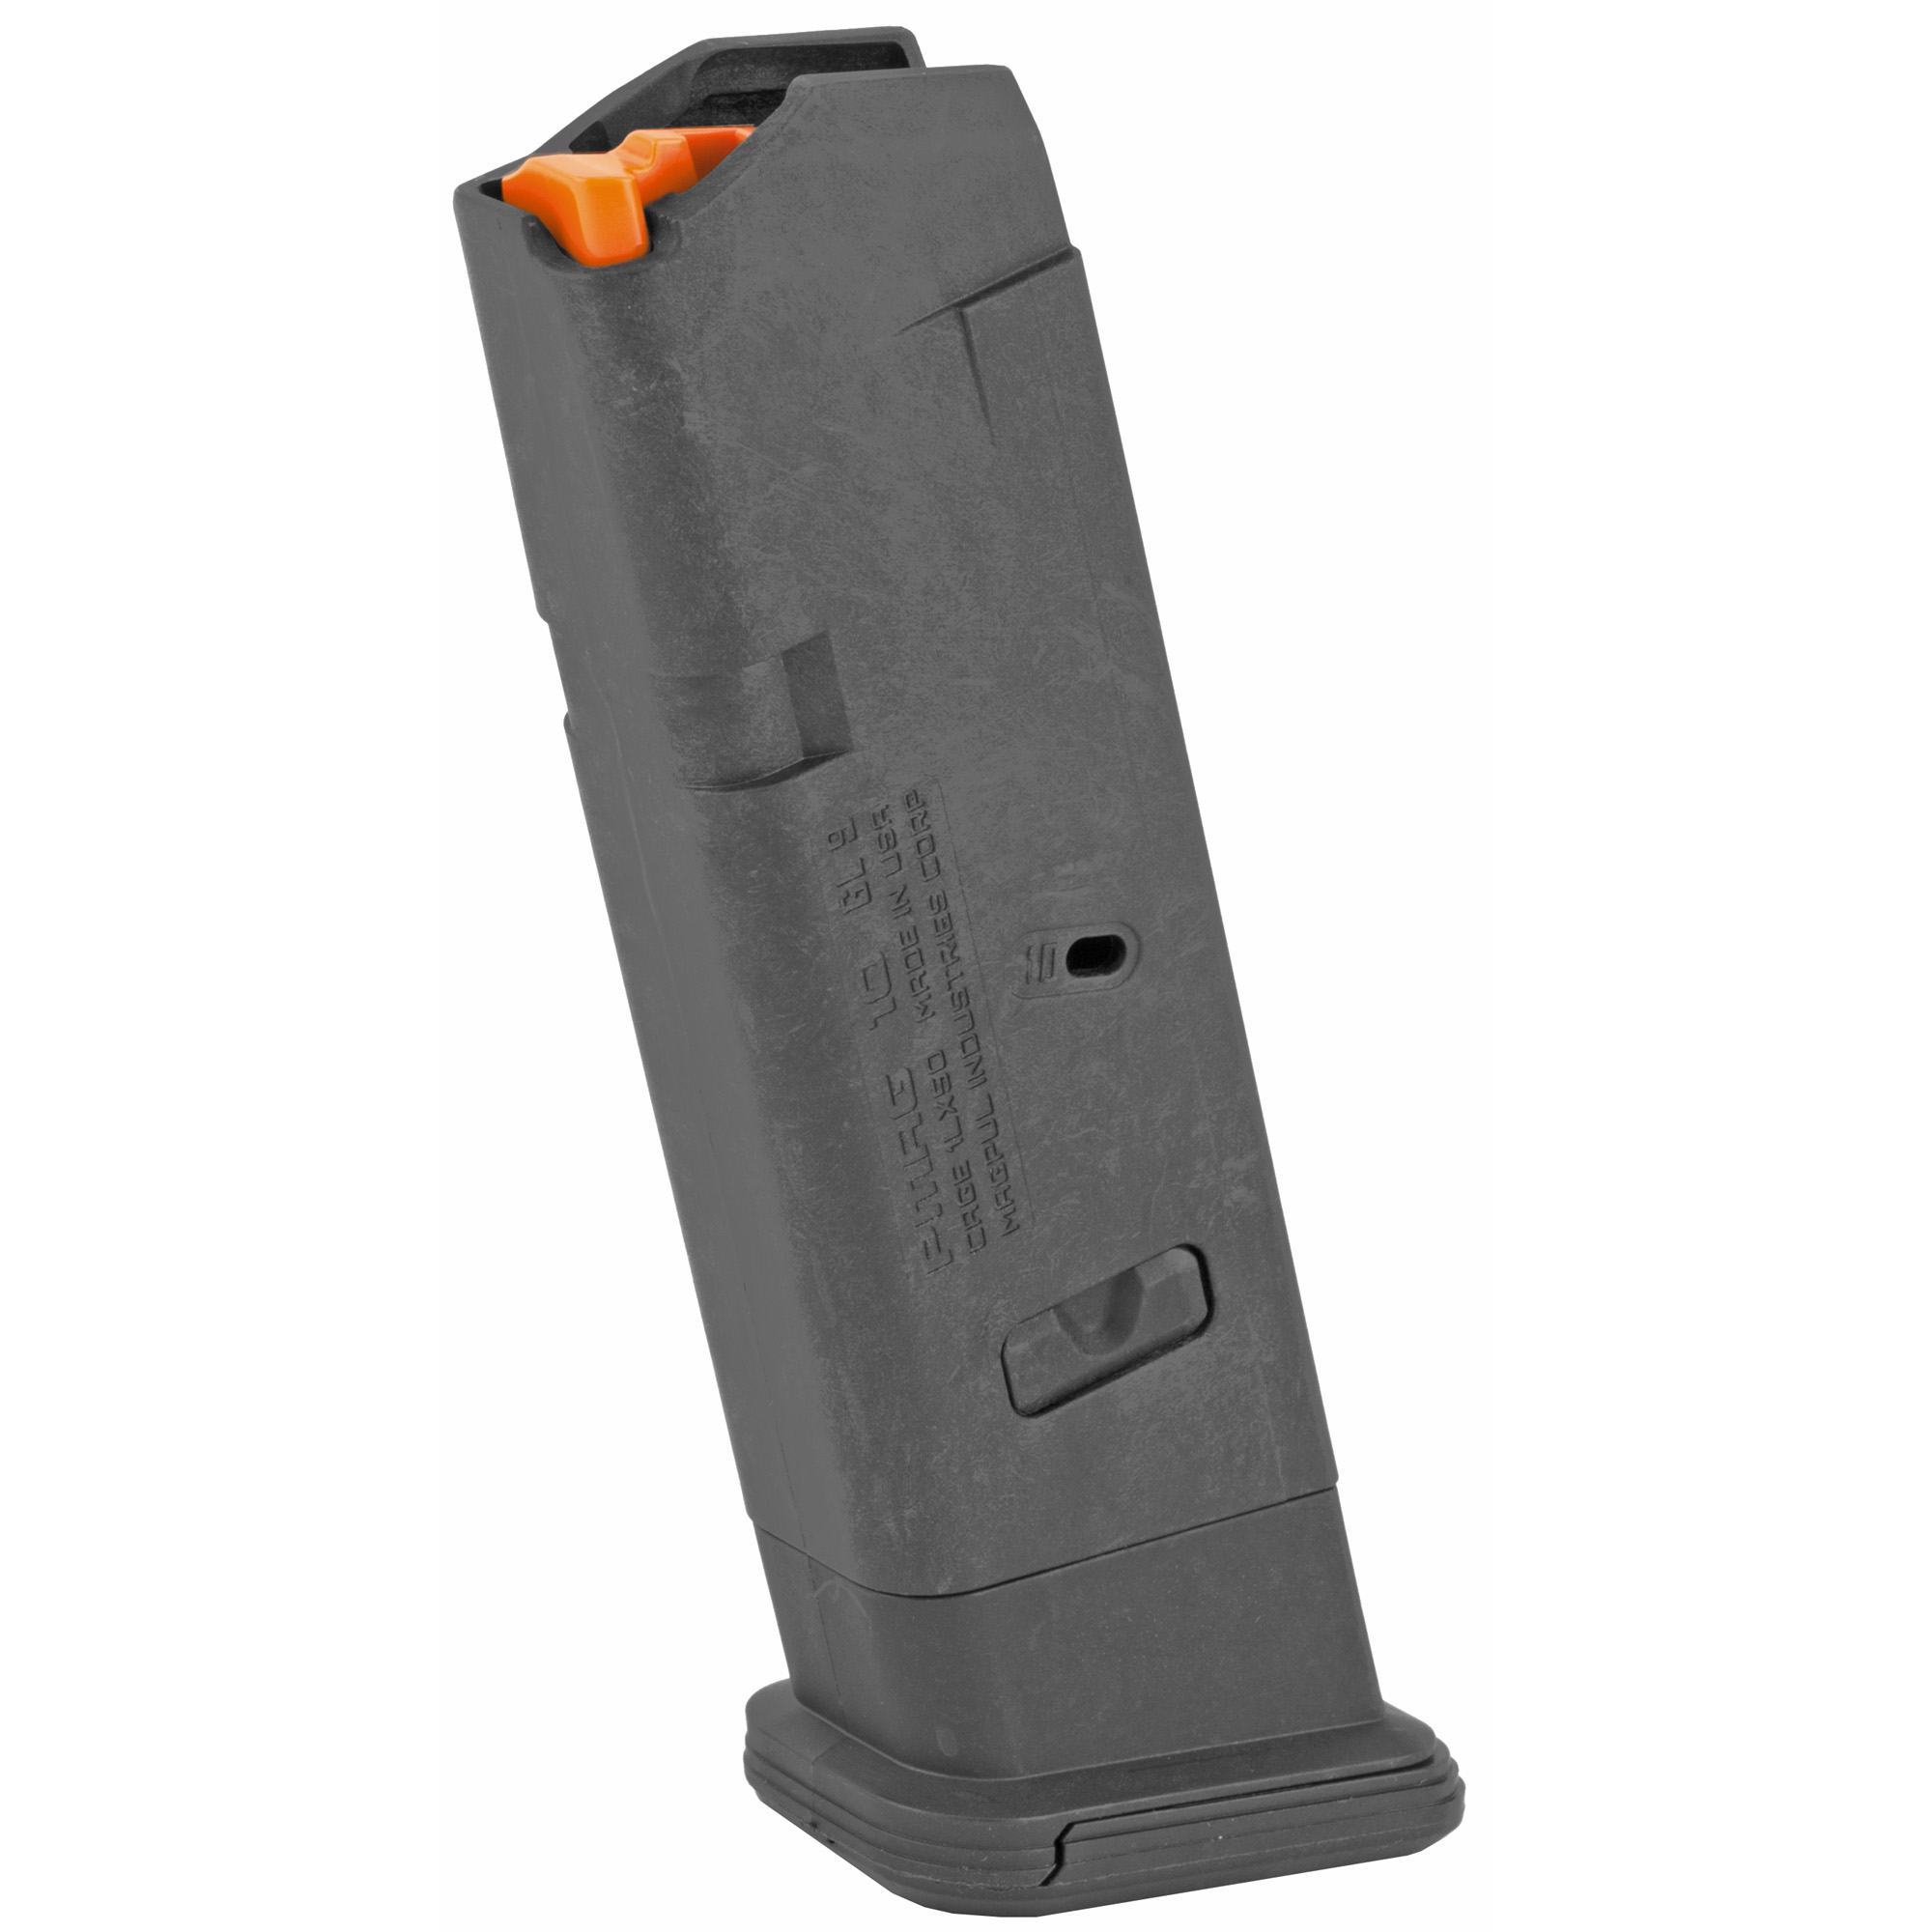 """The Magpul(R) PMAG 10 GL9 - Glock G17 and G19 9x19 Parabellum are the highest performing and most reliable restricted capacity magazines on the market. They are designed to provide the same quality and performance of the proven Magpul PMAG series of Glock magazines while also providing a viable product solution to those in locations and situations where a 10-round capacity restriction is required or desired. Whether for competition use or otherwise"""" the PMAG 10 GL9 is the highest quality restricted capacity magazine option available."""